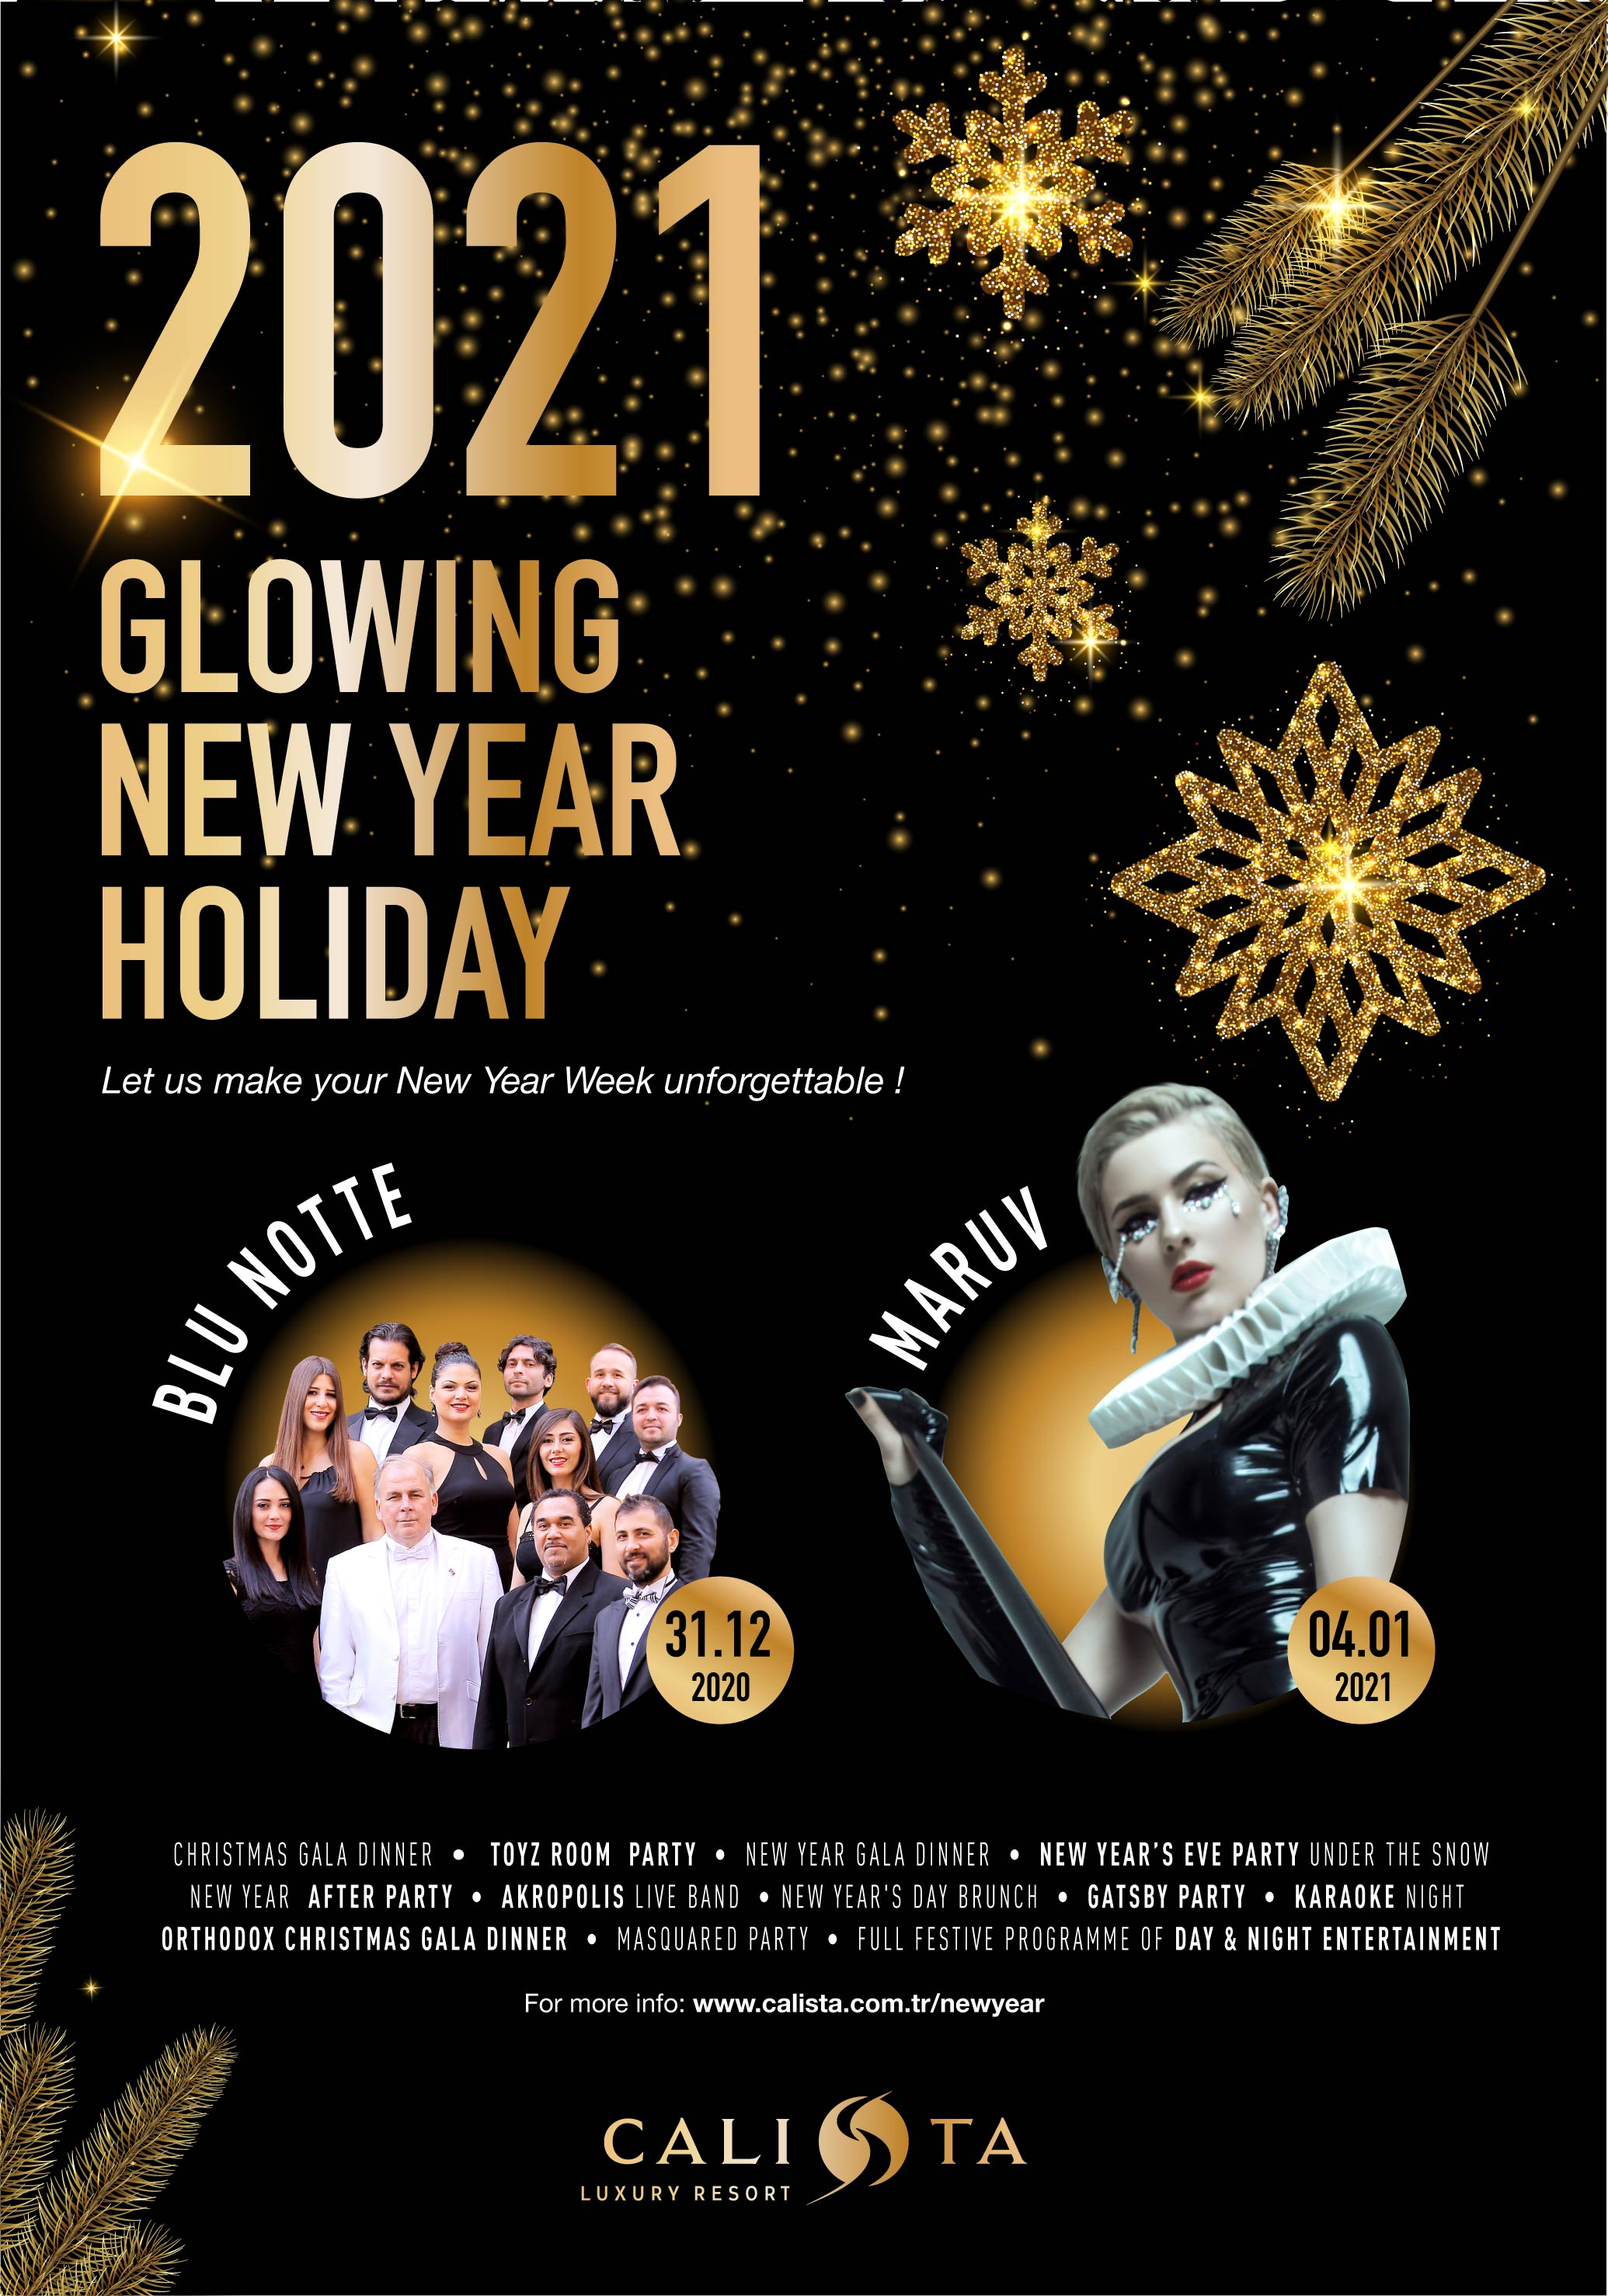 calista_new_year_2021_anaposter_EN-01.jpg